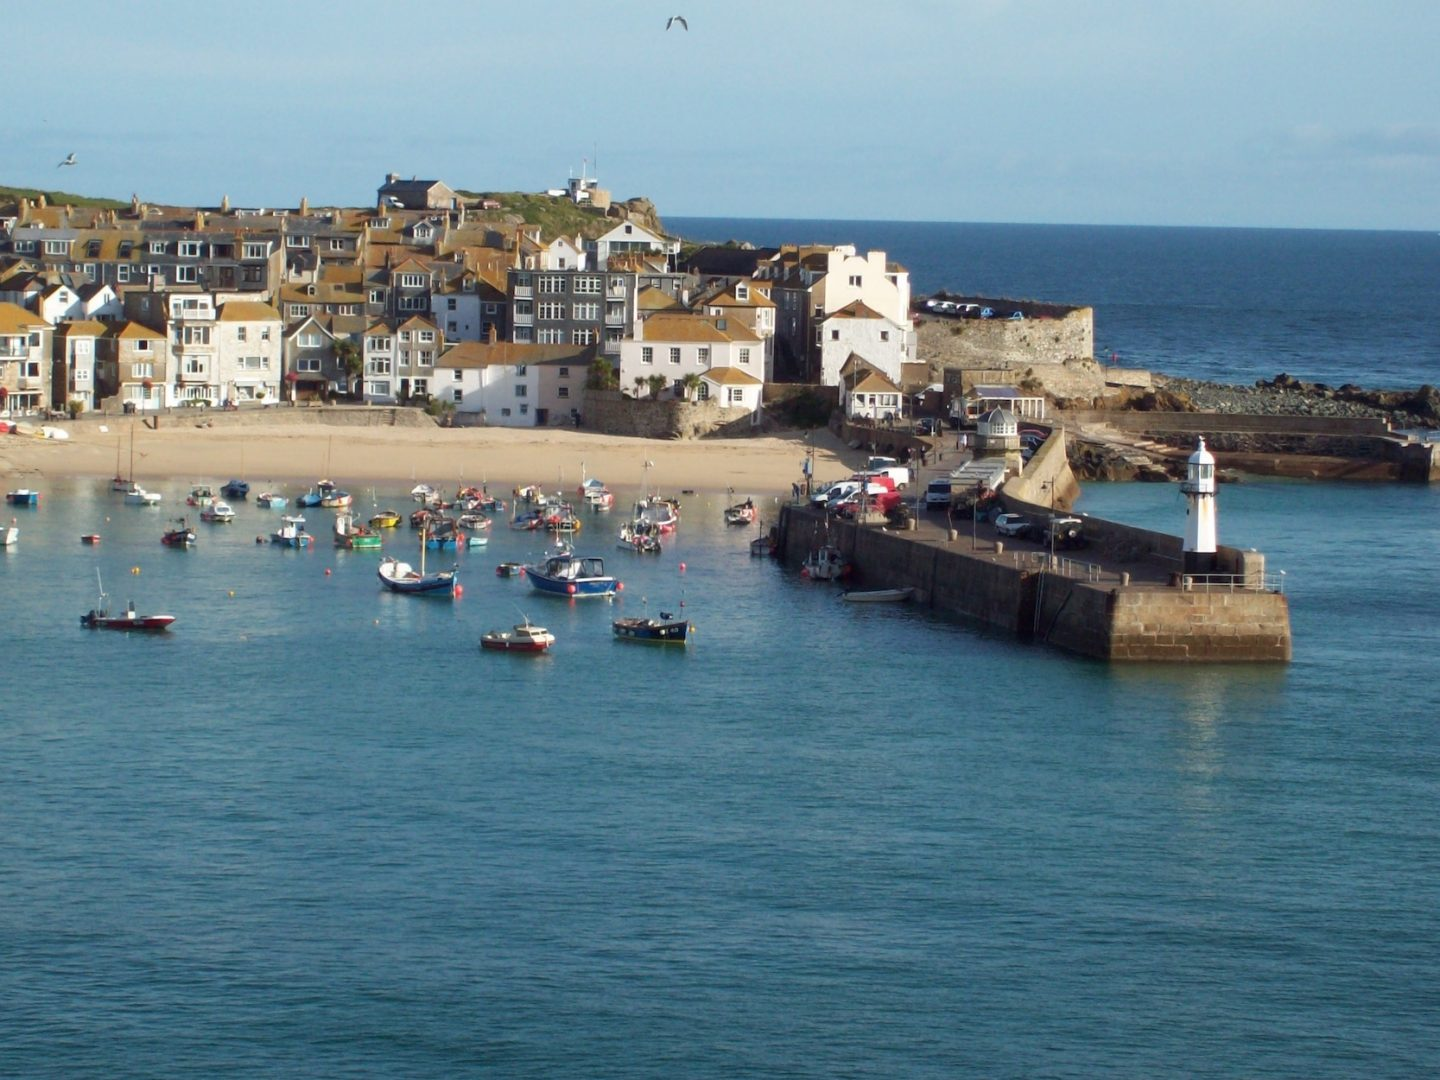 I want to live in St.Ives!